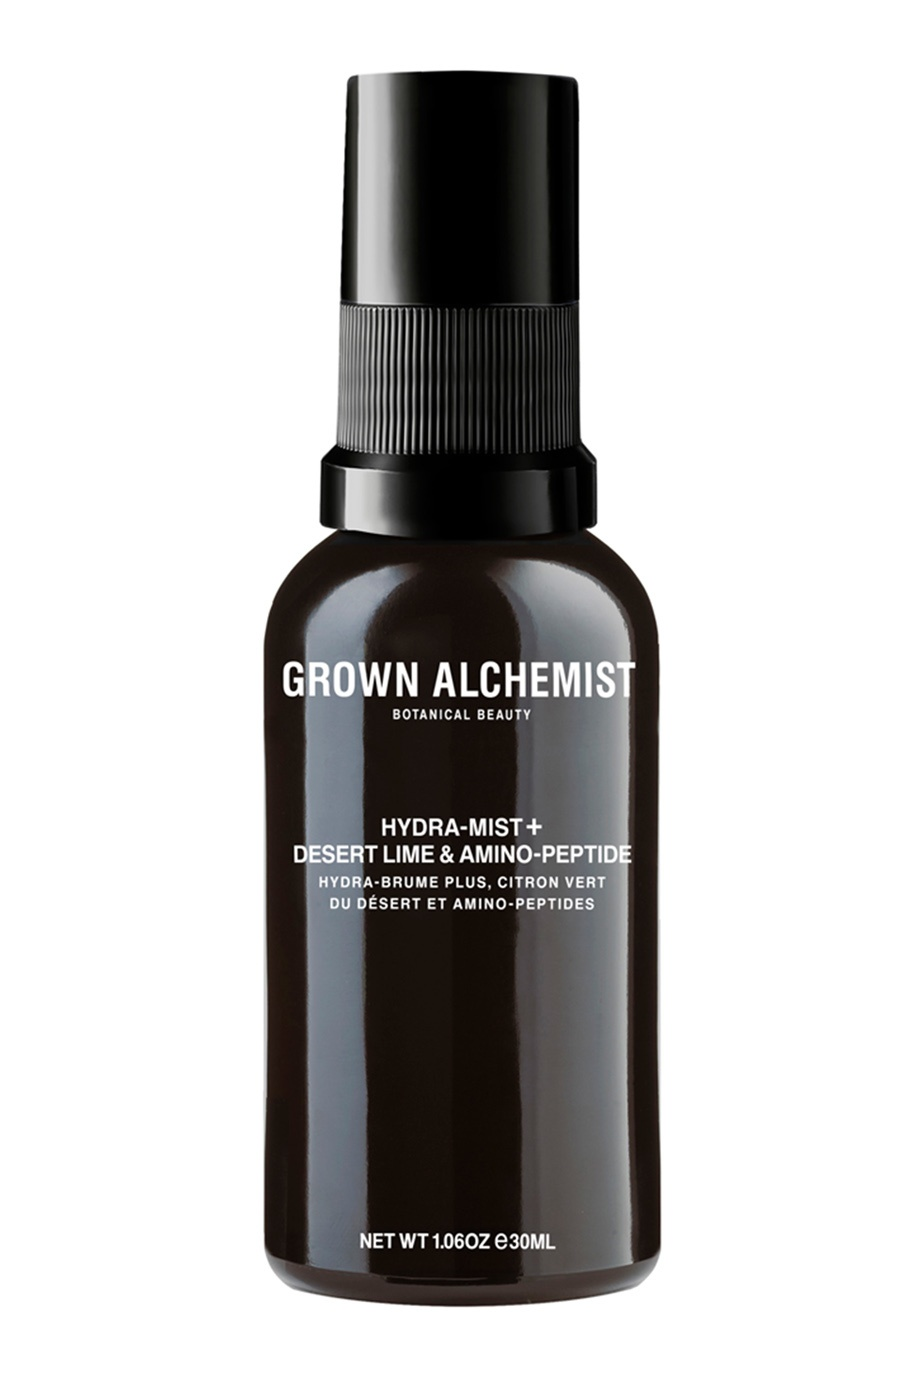 Увлажняющий спрей для лица «Лайм и аминопептид» 30ml Grown Alchemist (фото)